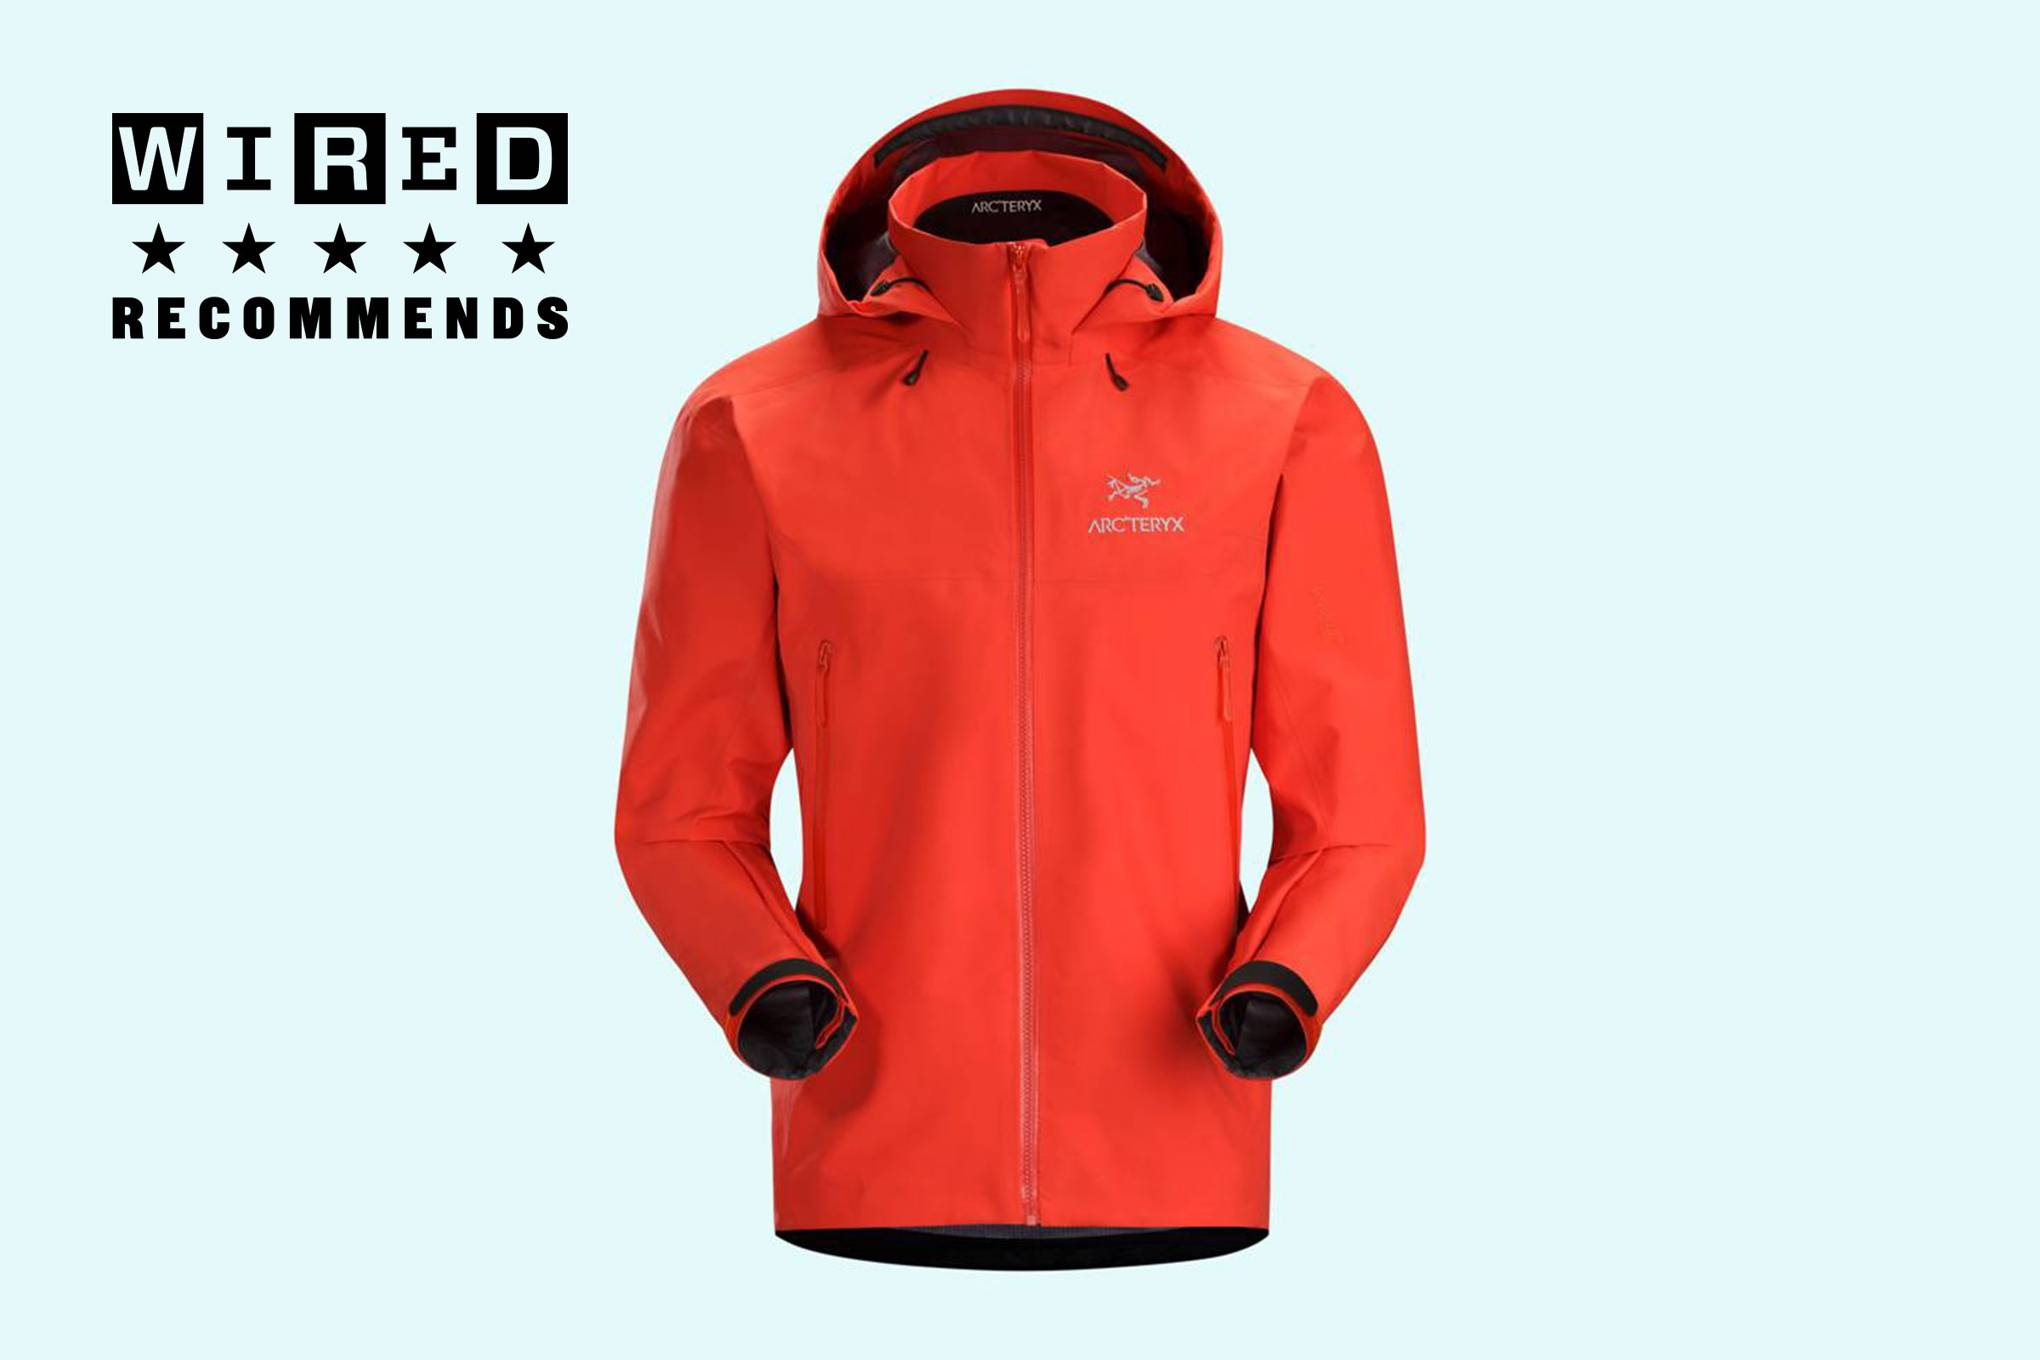 b25ca8c18 The best waterproof jackets to keep you dry (and stylish) for men and women  | WIRED UK